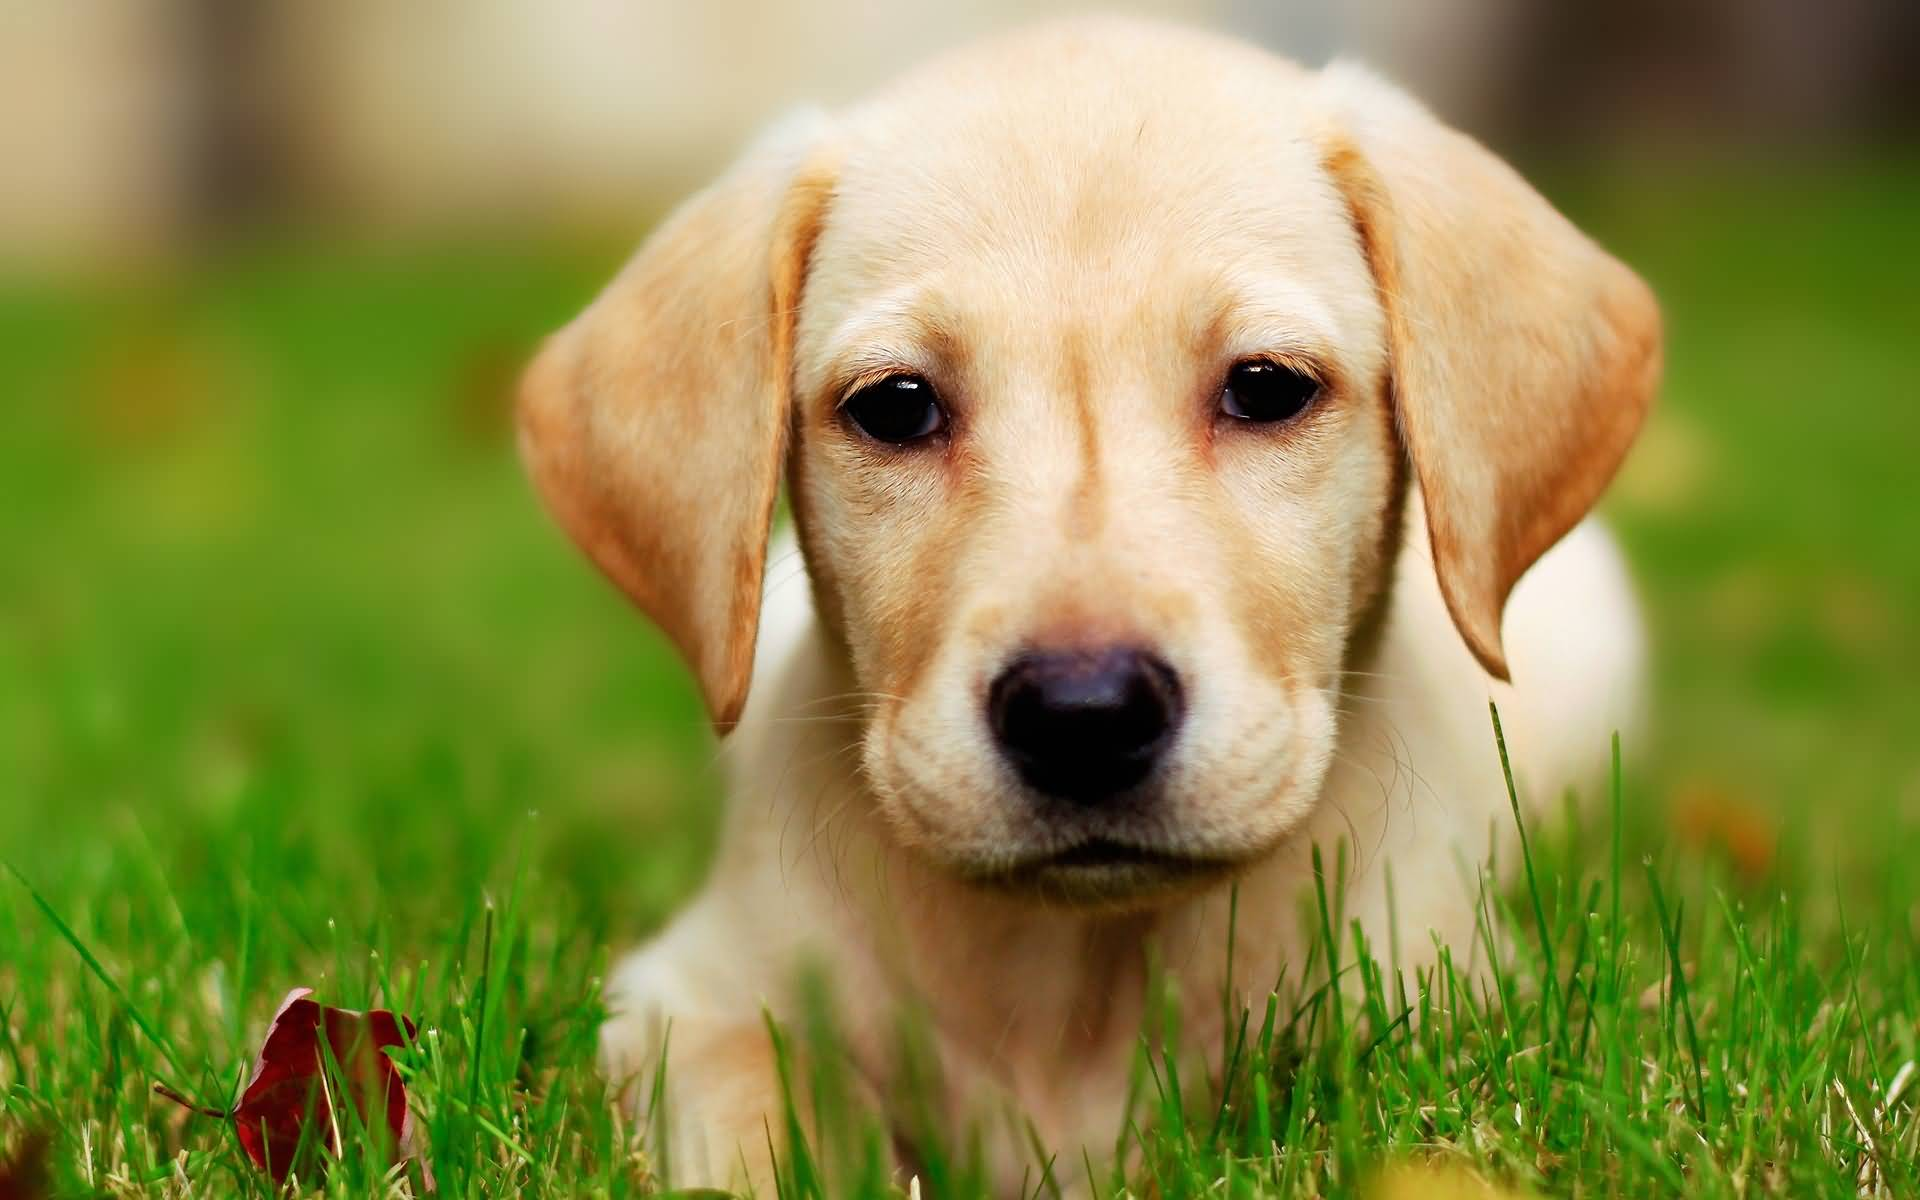 Cute White Labrador Retriever Pup In Grass